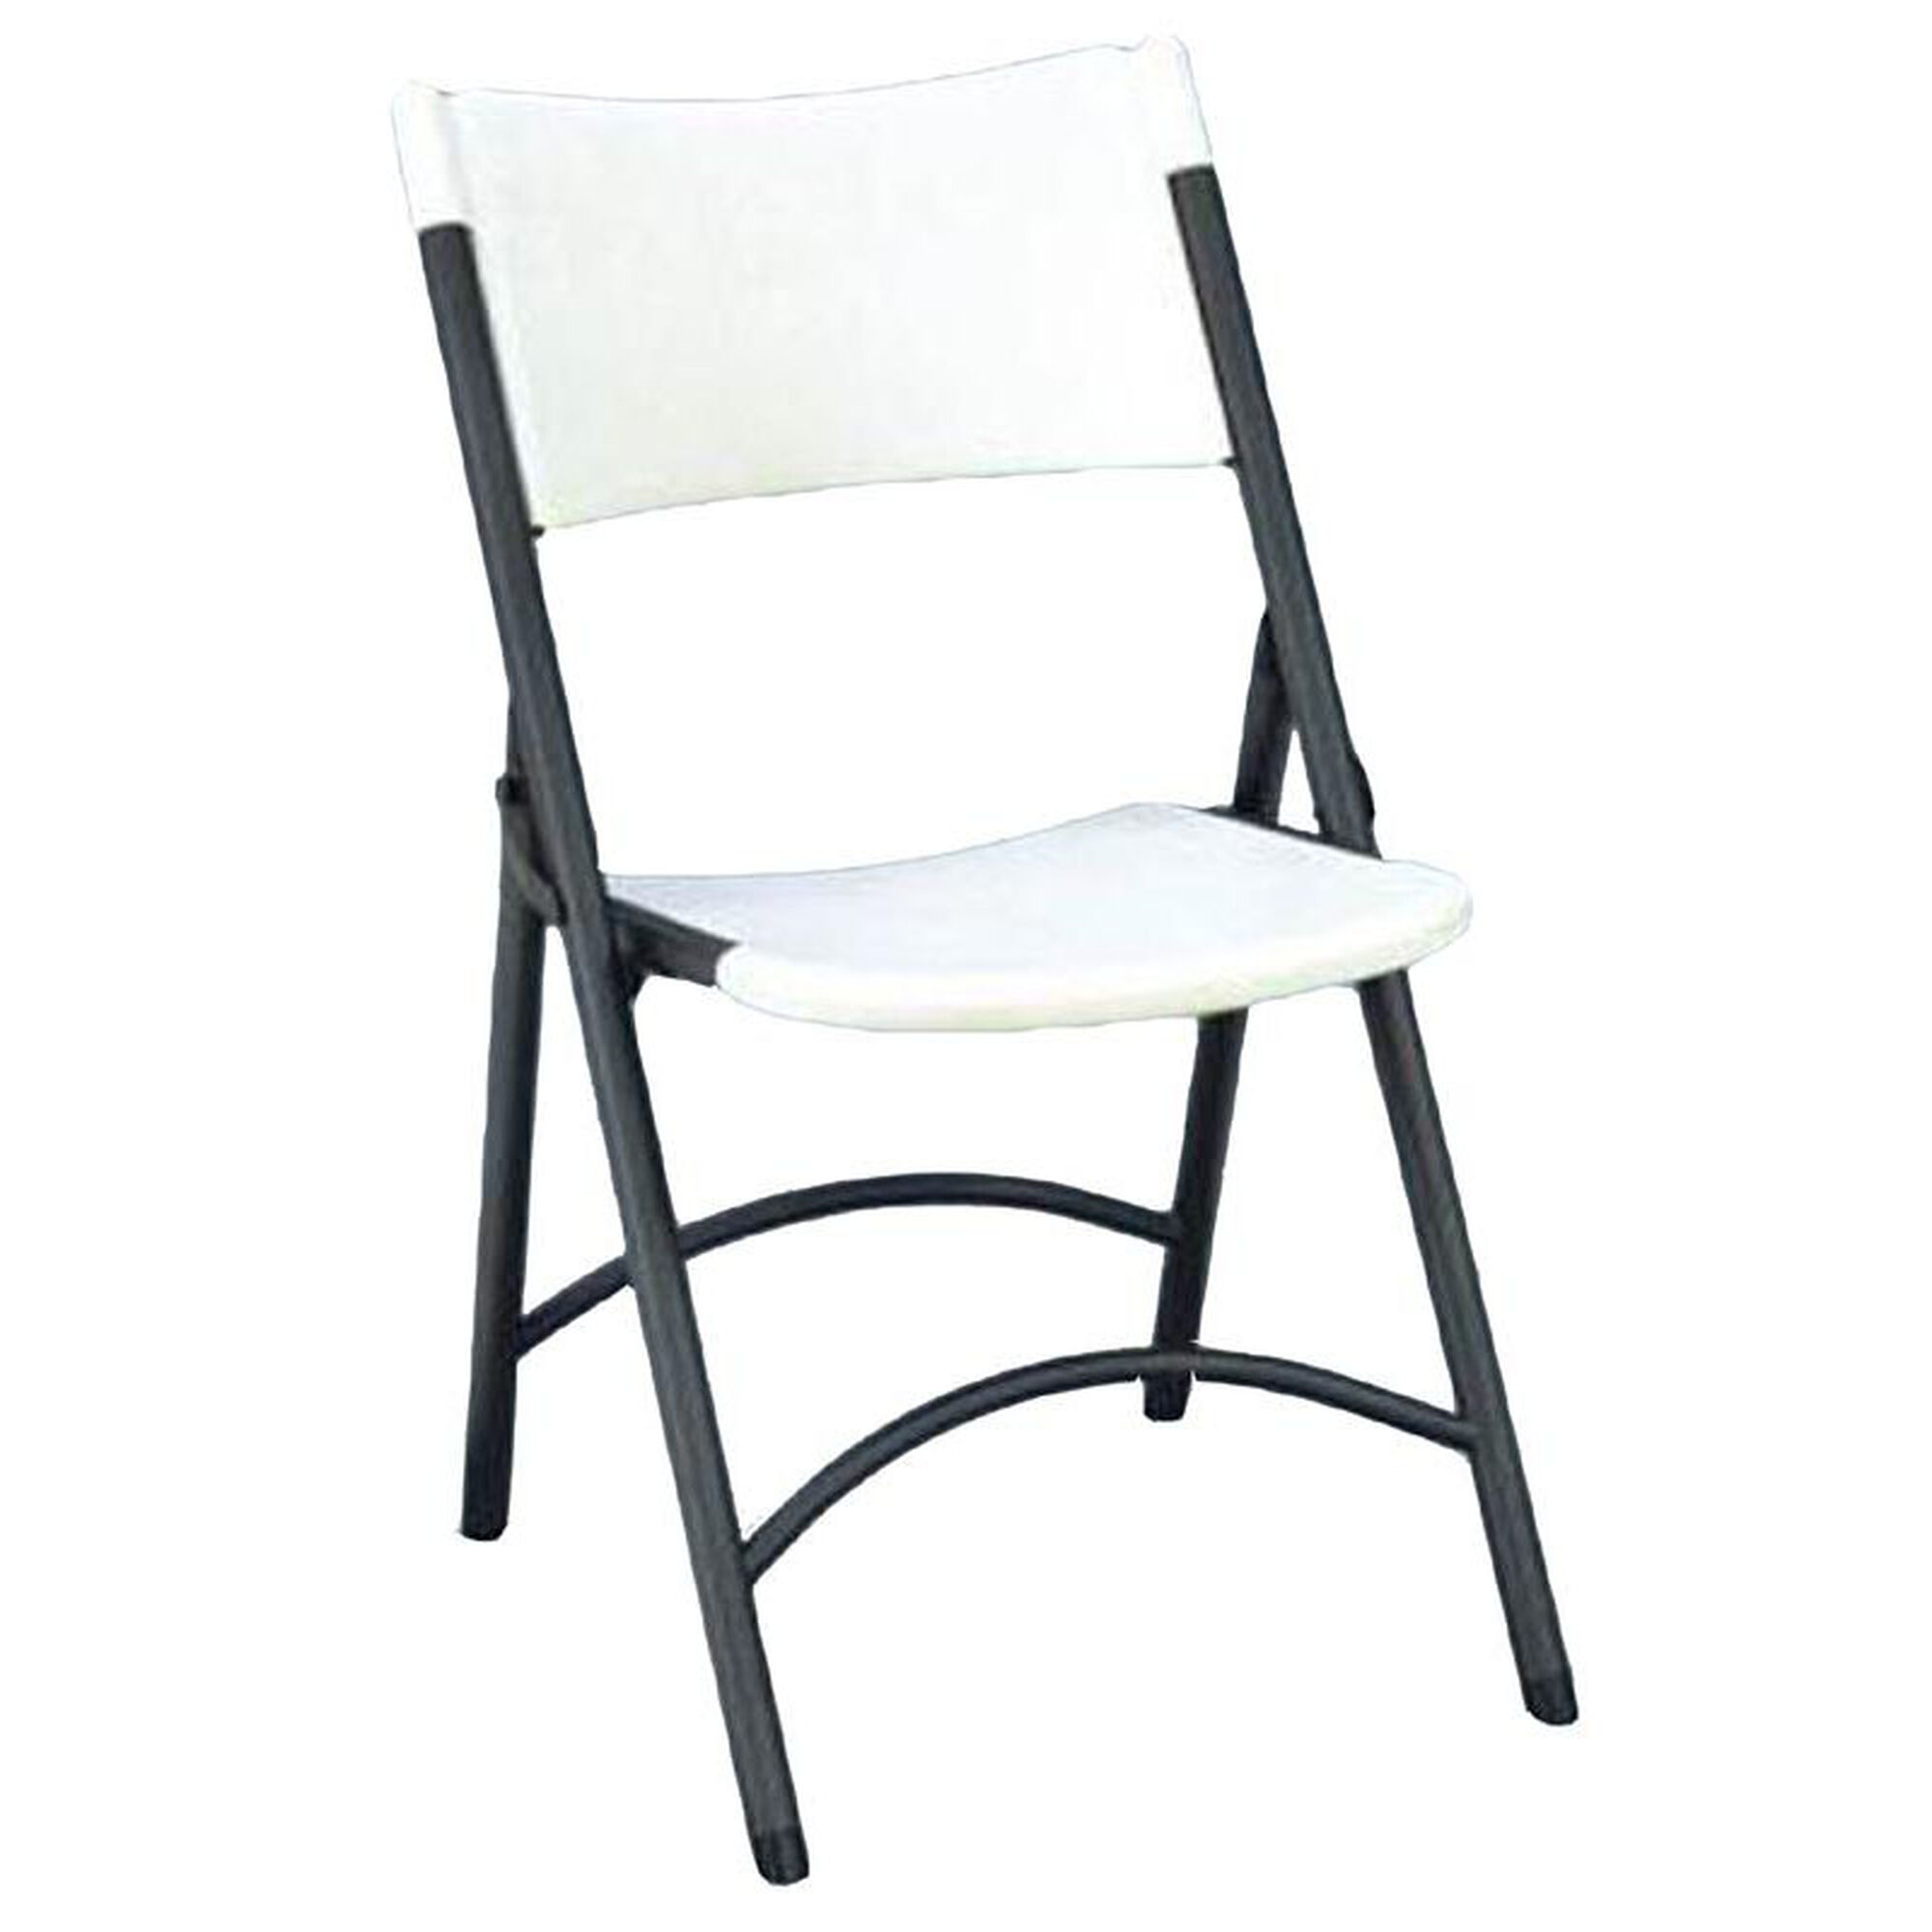 Fine Armless Plastic Folding Chair With Charcoal Steel Frame Gray Granite Seat And Back Interior Design Ideas Apansoteloinfo